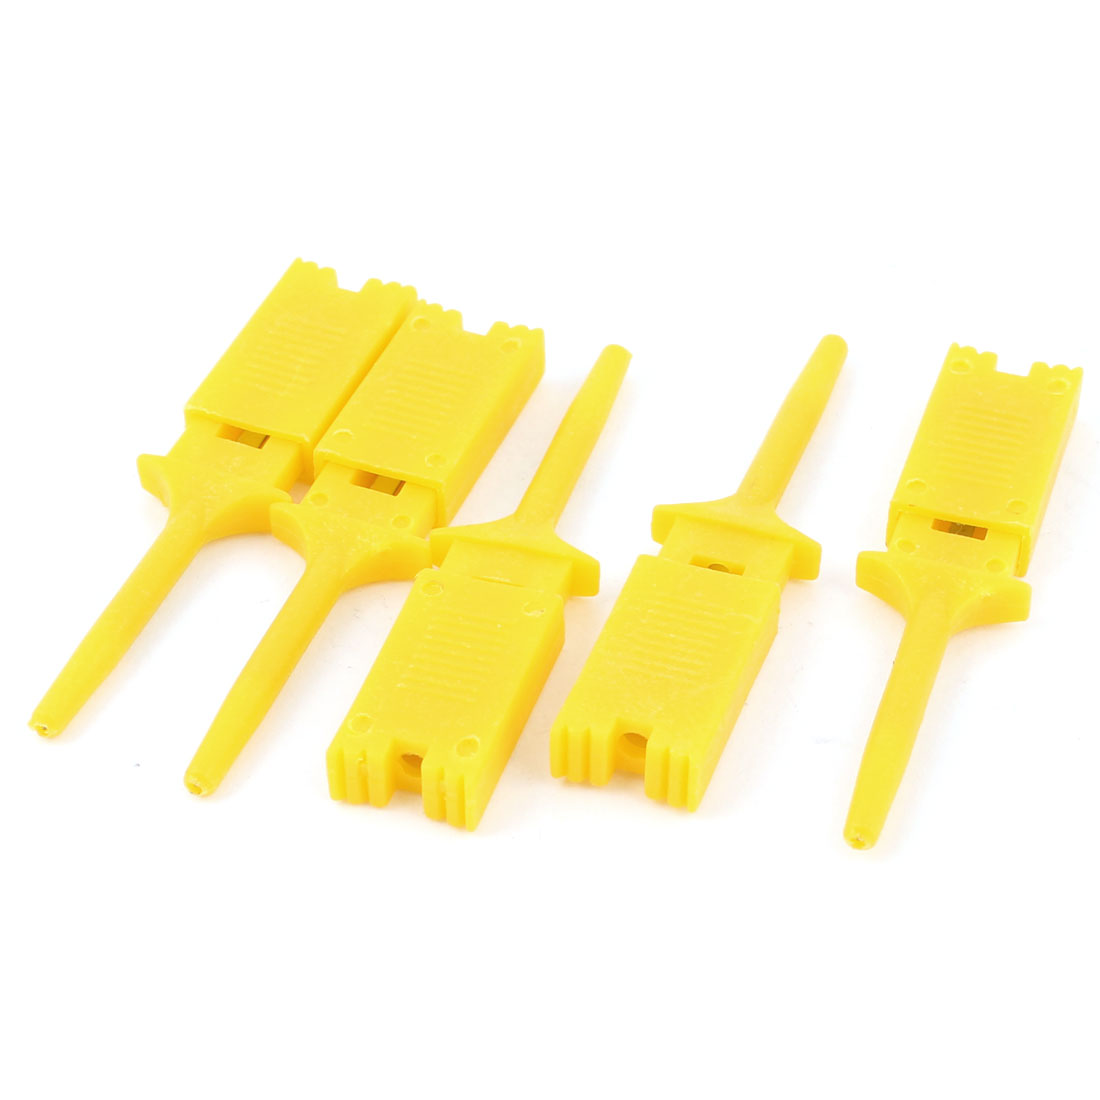 "Unique Bargains 5 Pcs Yellow 2"" Length Meter Multimeter Lead Wire Testing Split Hooks Clip"